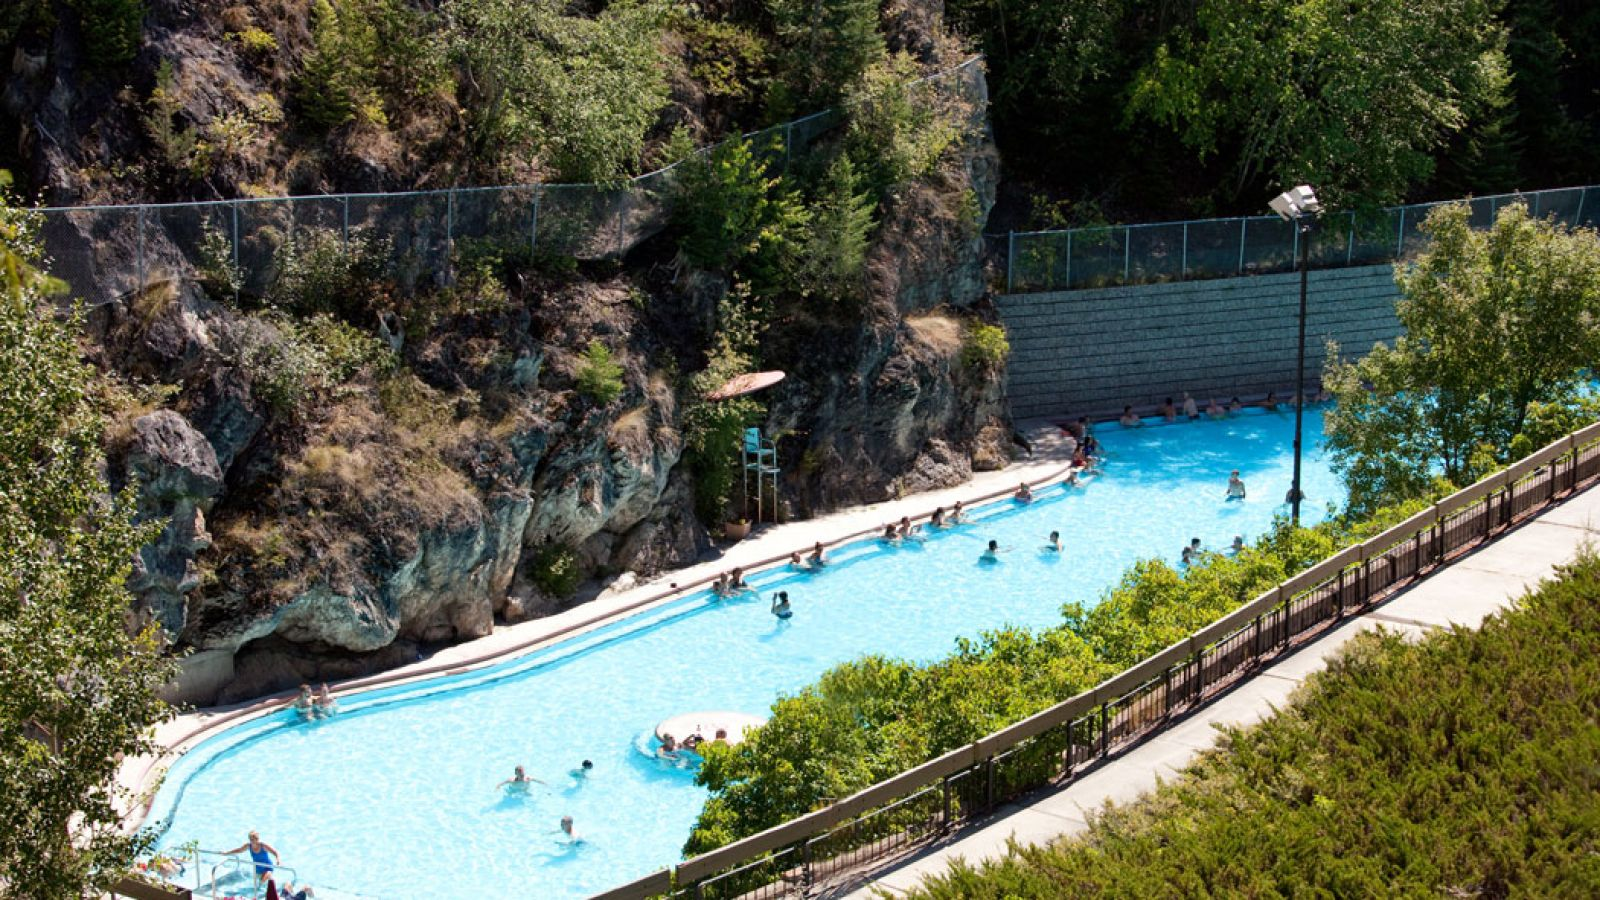 Radium Hot Springs pools are located inside the park at the southern gateway.